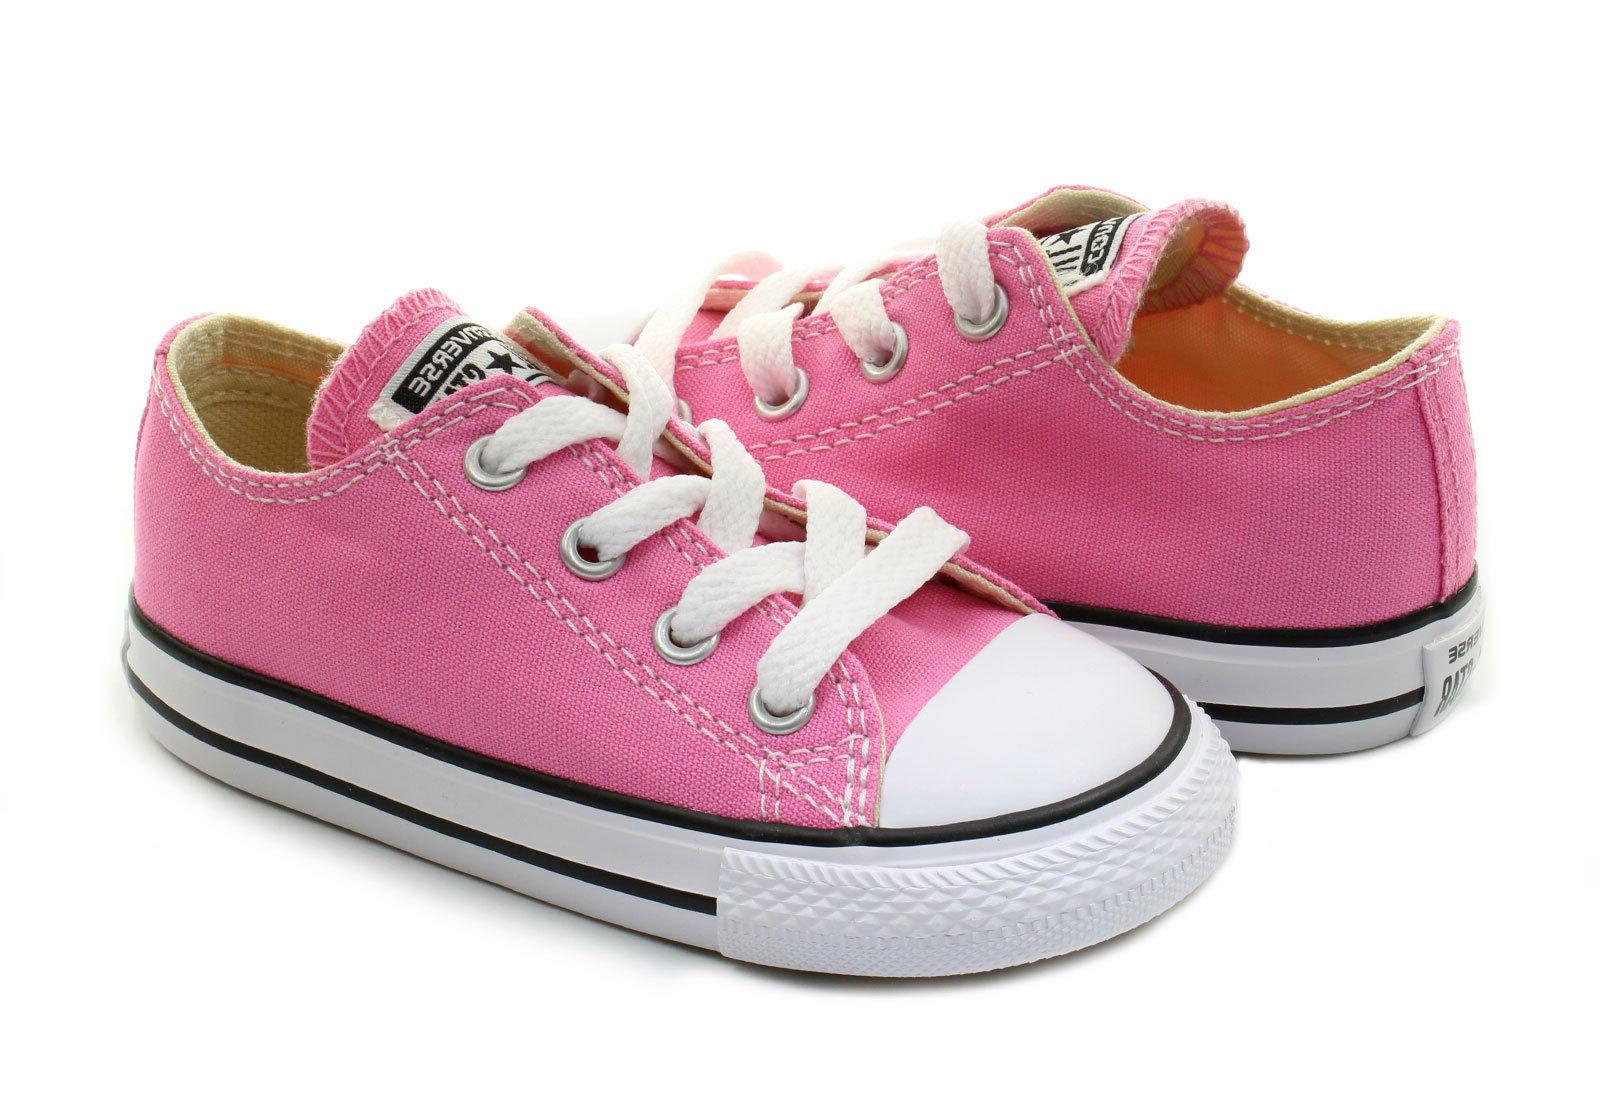 Converse Low Top All Star Ox Baby Boy Girl Toddler Infant Pi